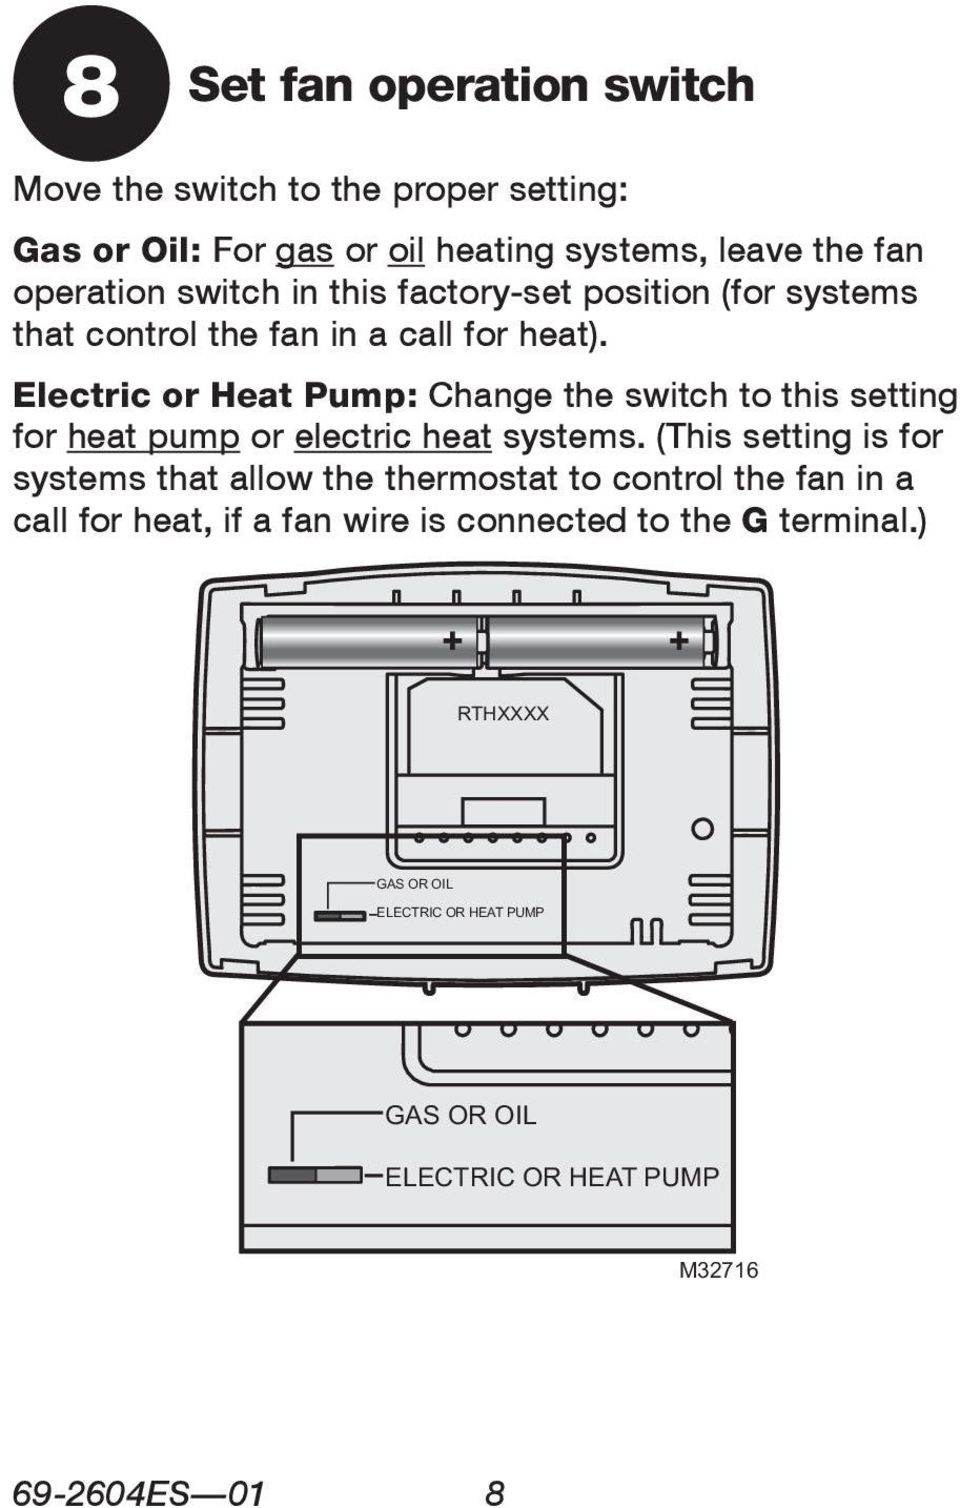 Electric or Heat Pump: Change the switch to this setting for heat pump or electric heat systems.